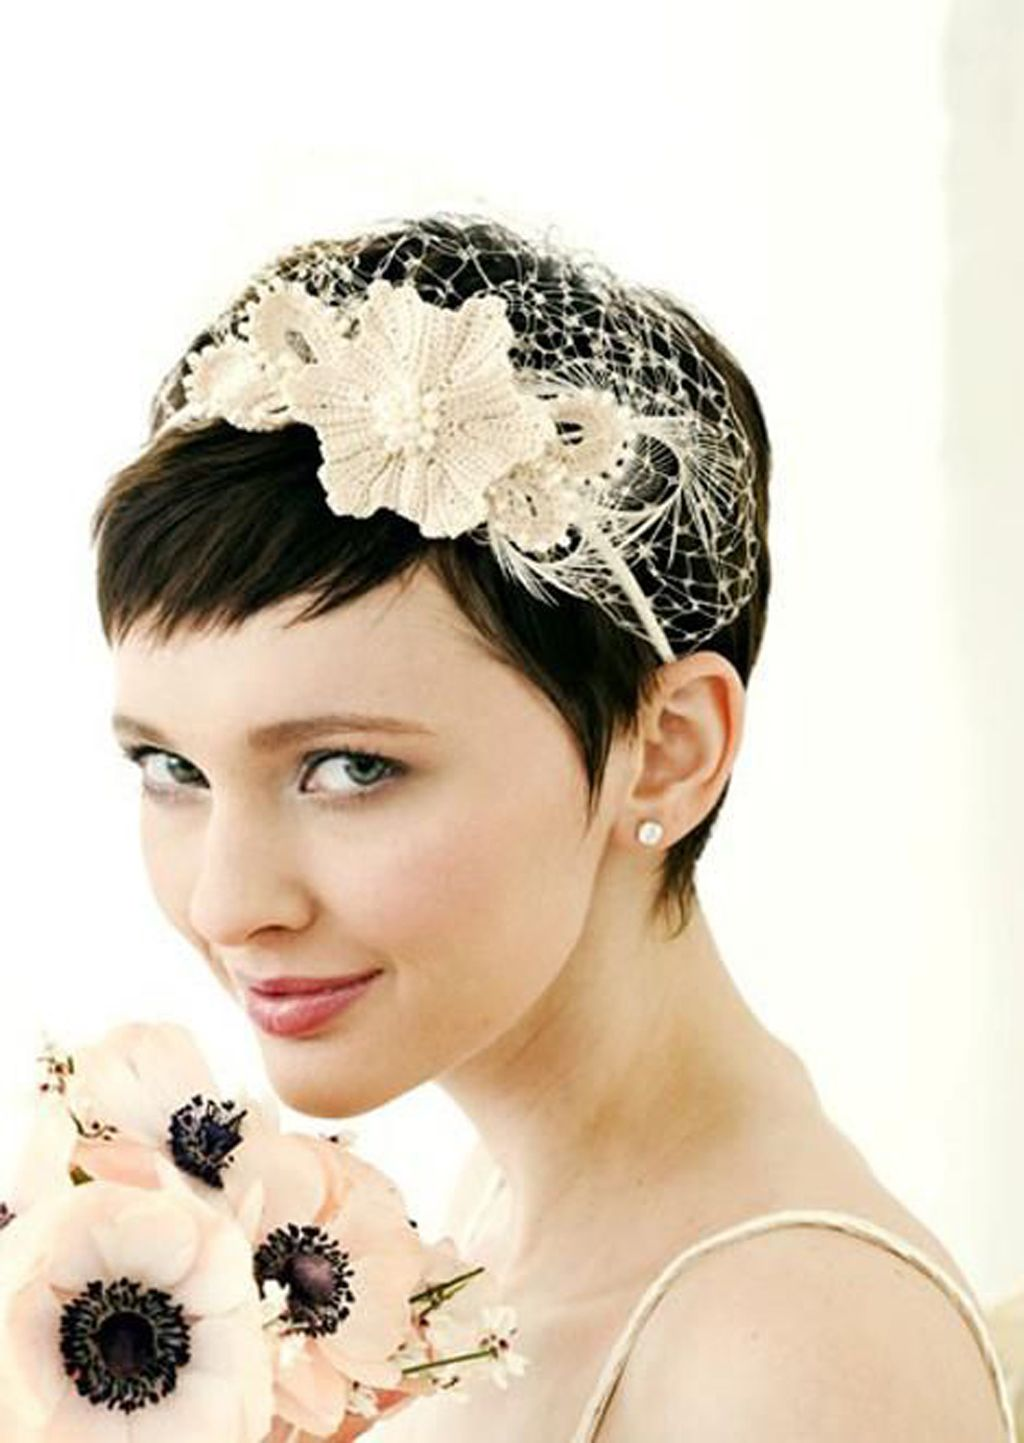 How to Get Short Wedding Hairstyles   Simple Hairstyle Ideas For Women and  Man 33cc85b39c7